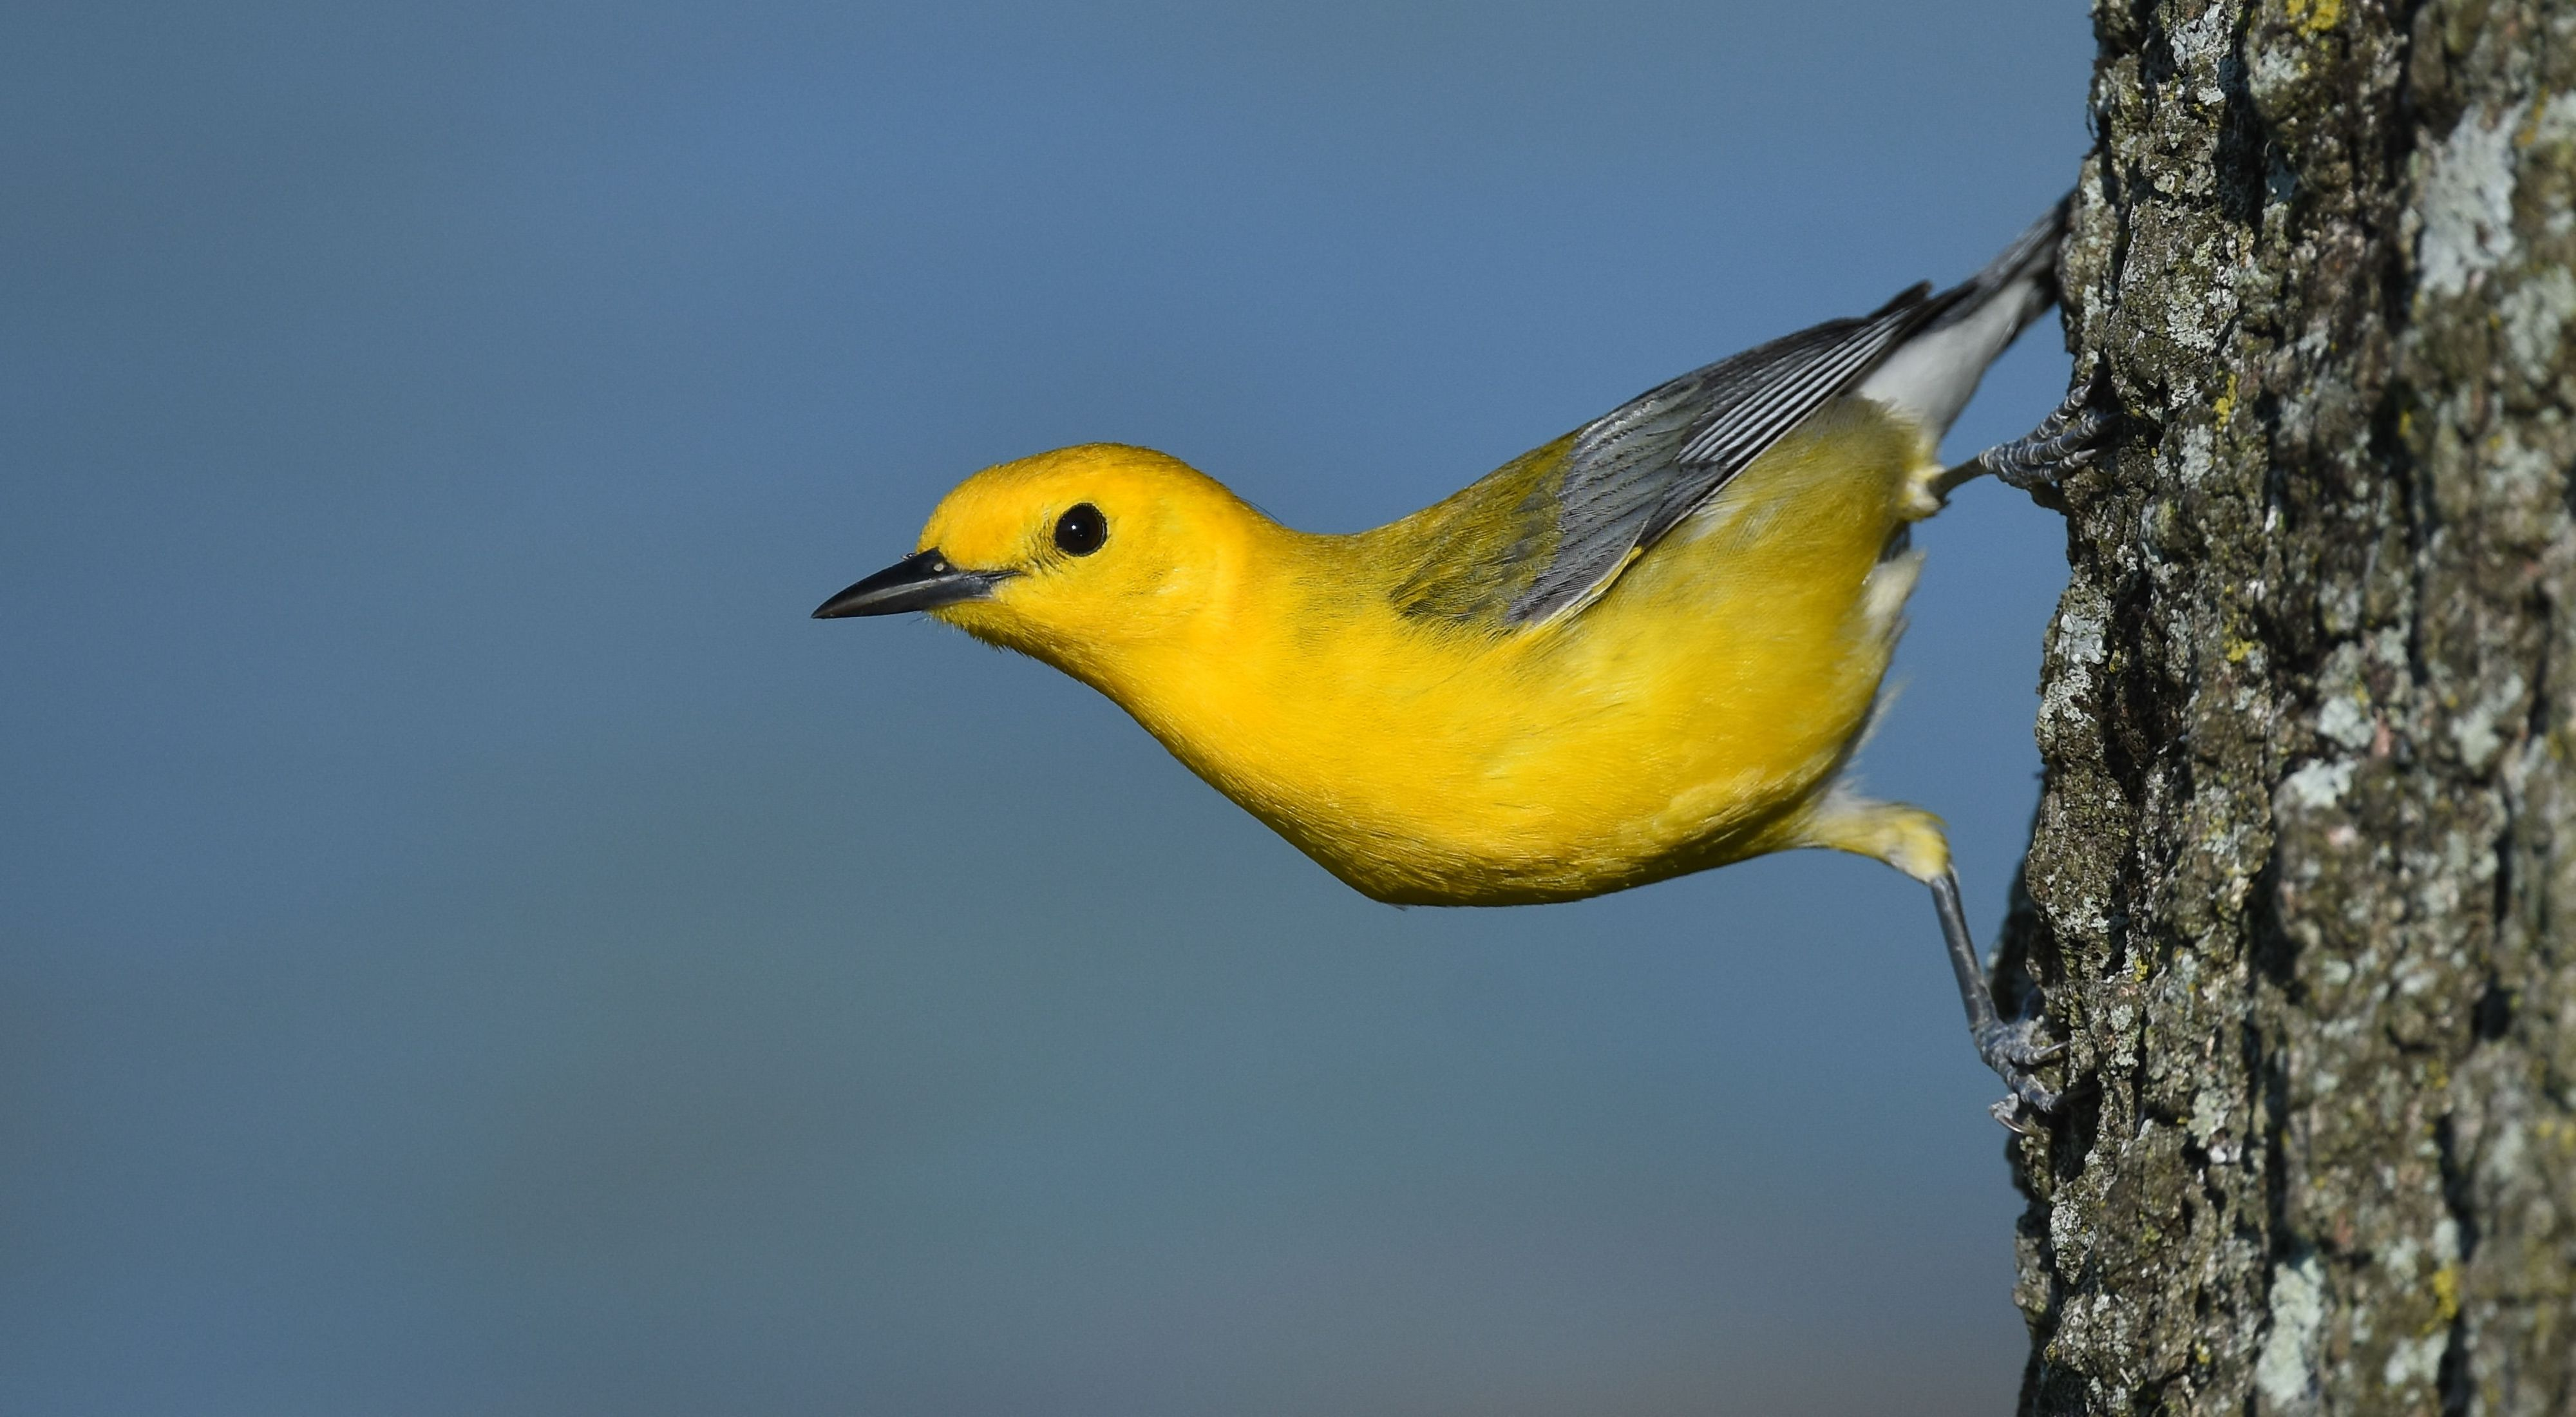 Prothonotary warblers thrive in swampy habitats along the Savannah River.